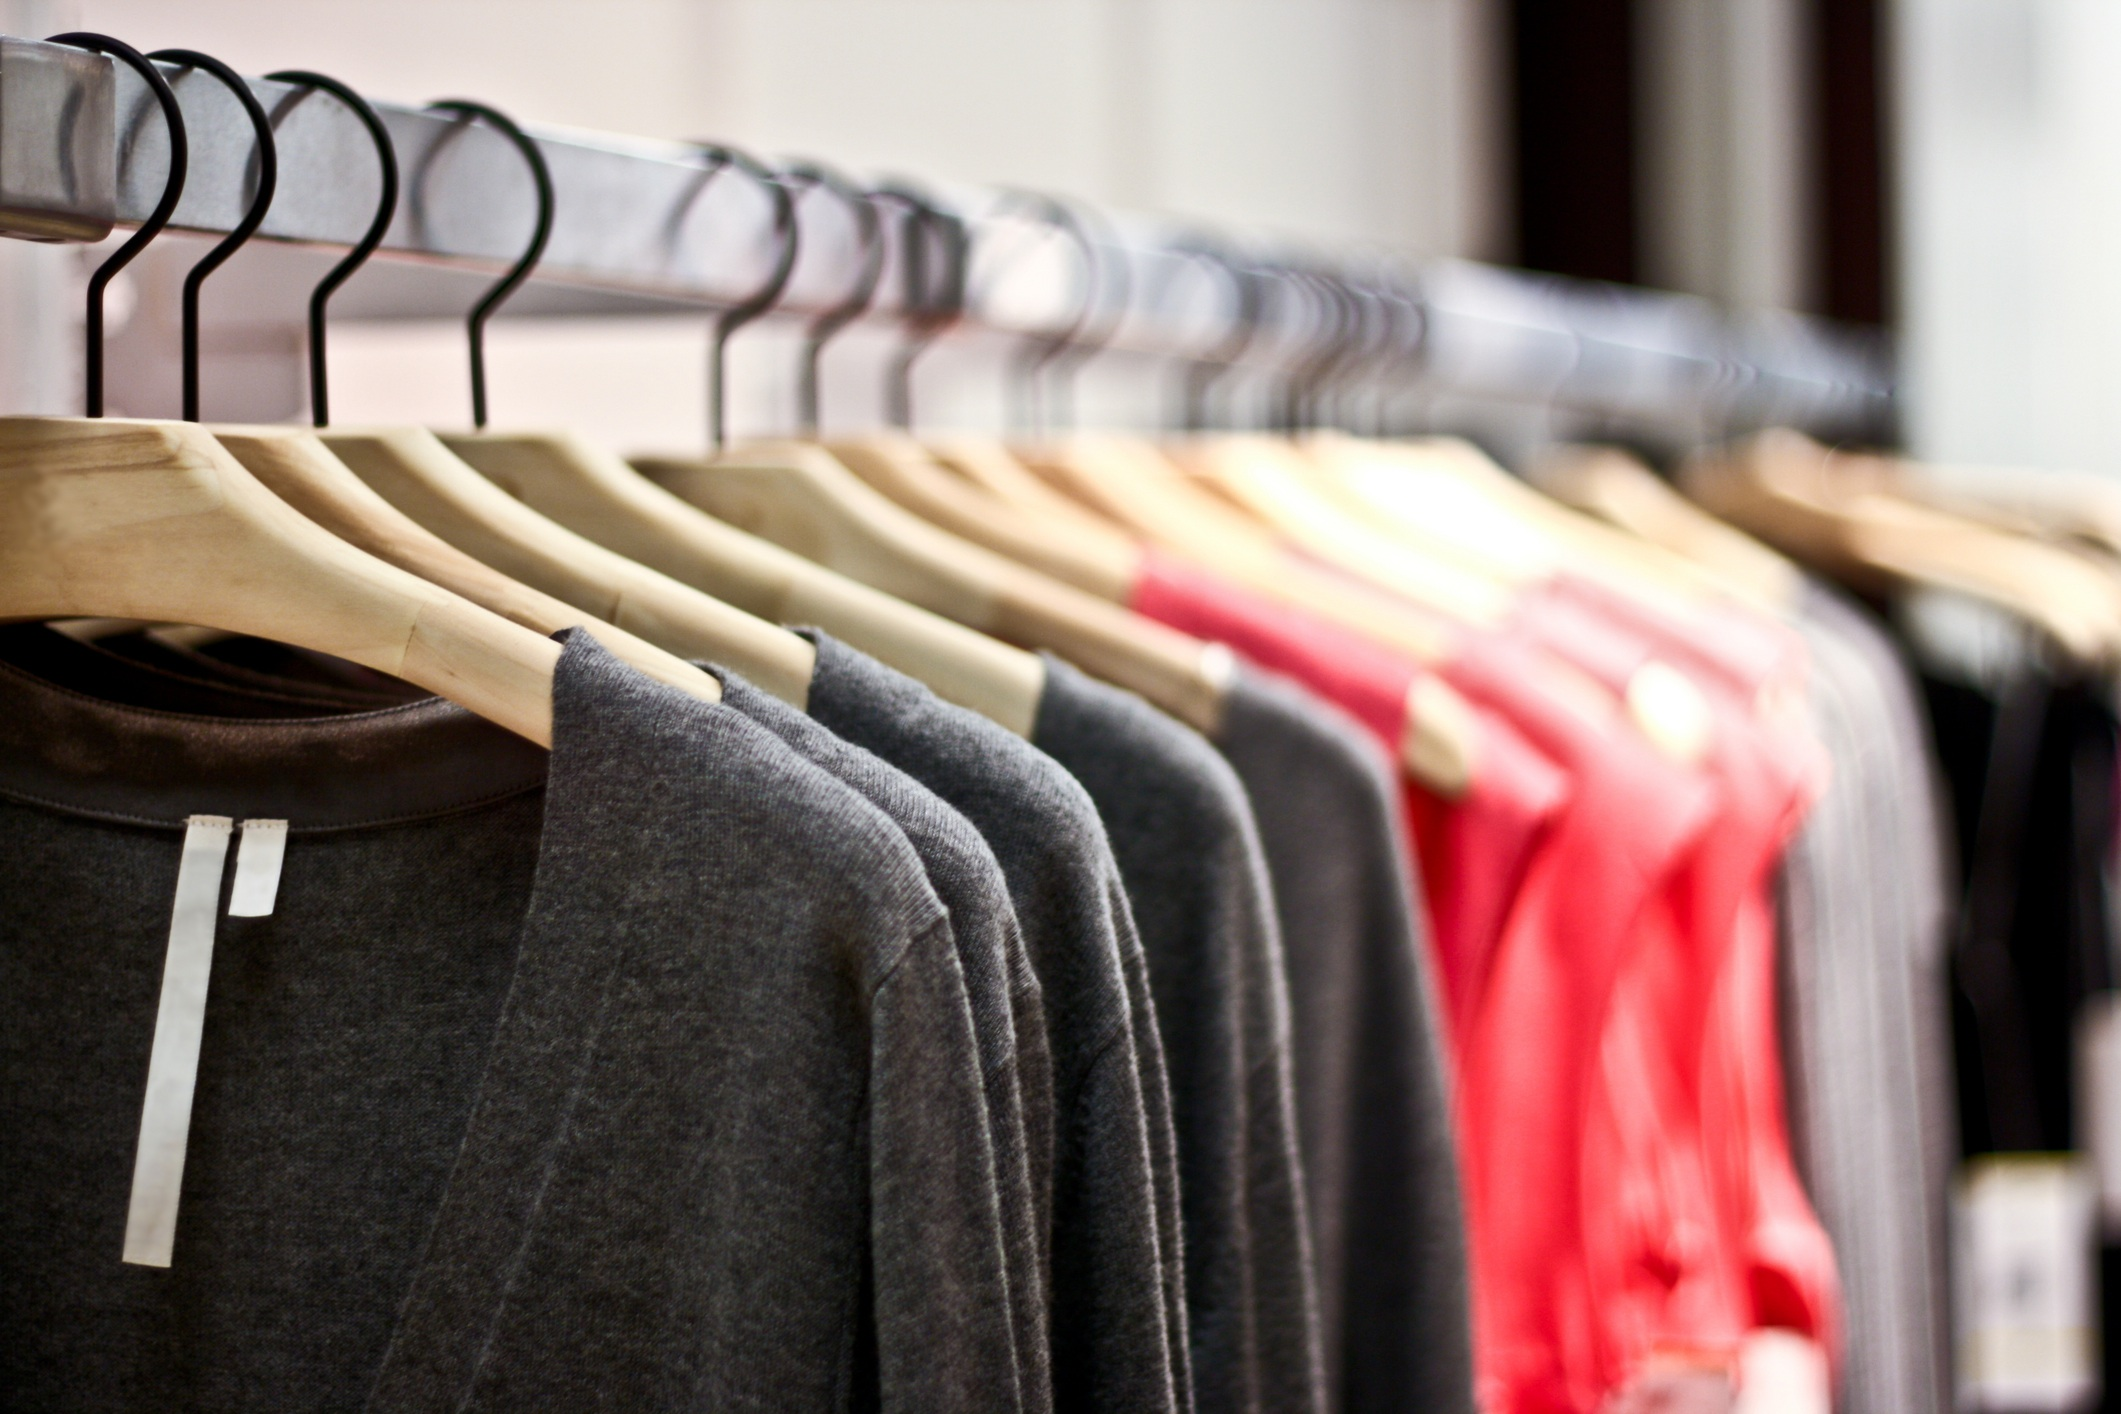 Apparel in the top list for imported goods in the US